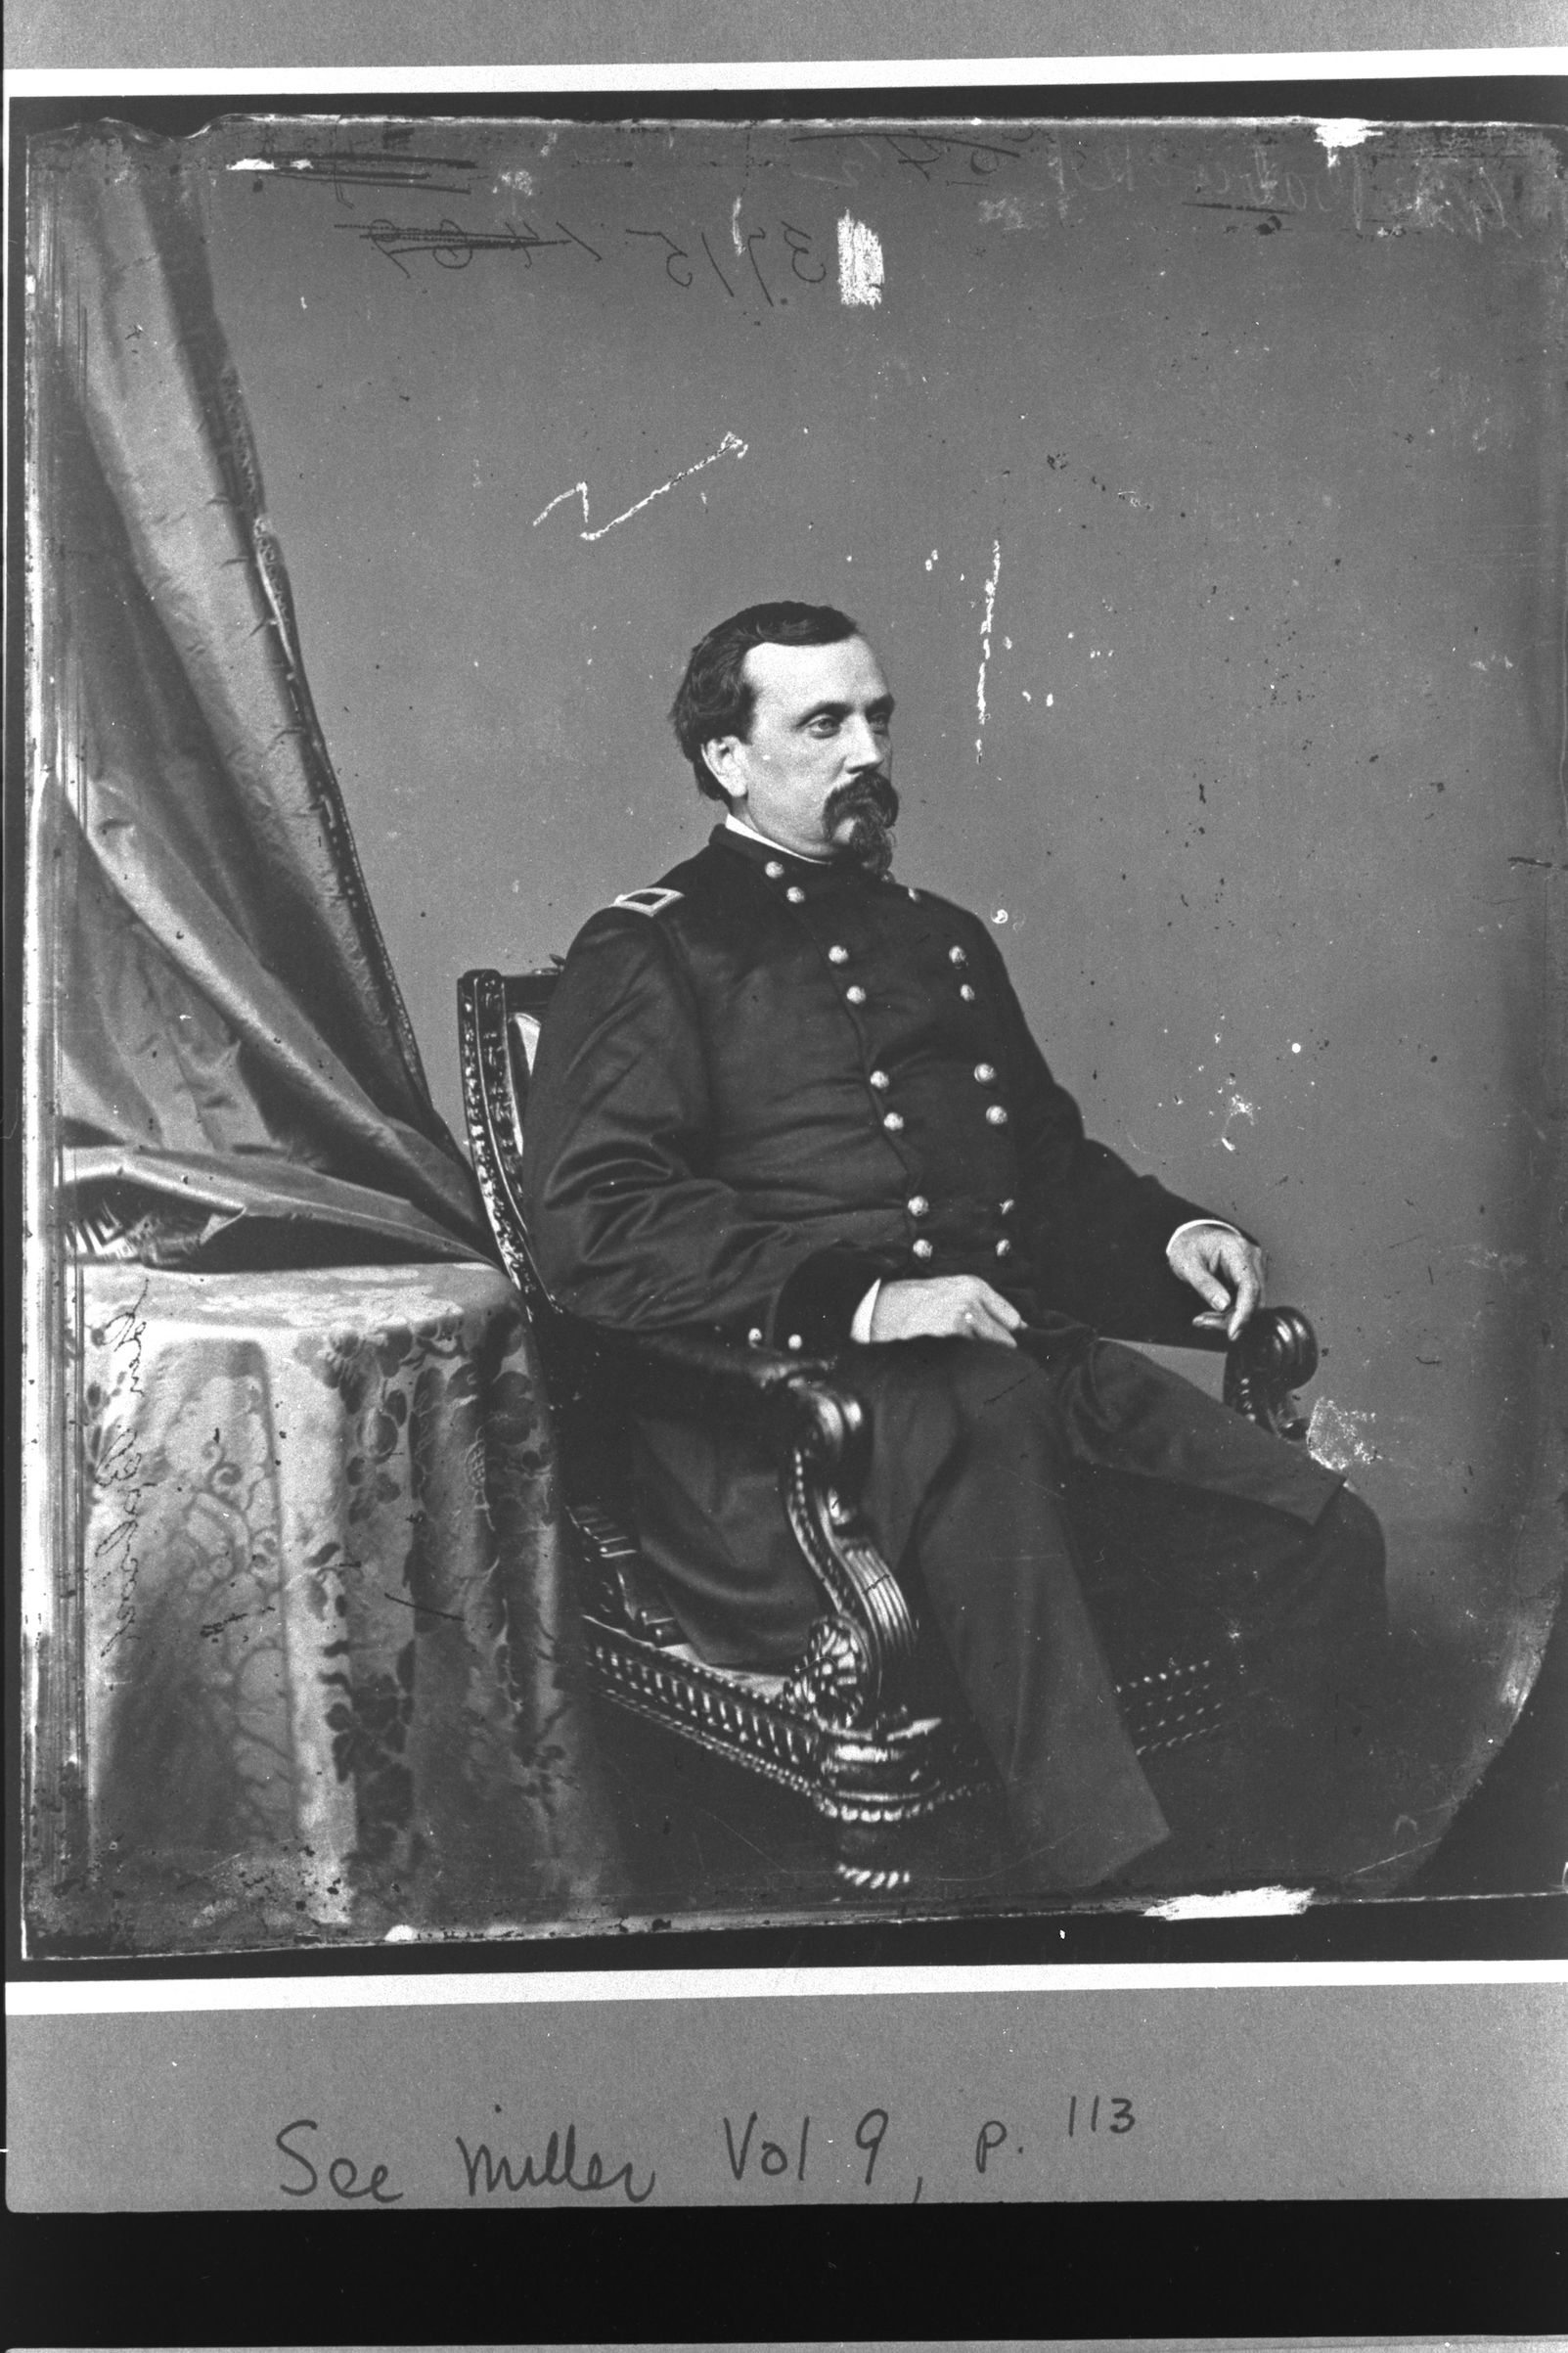 Orville Babcock was an American military officer. He was an aide-de-camp to General Grant during the Civil War, and then was his private secretary when Grant was president.